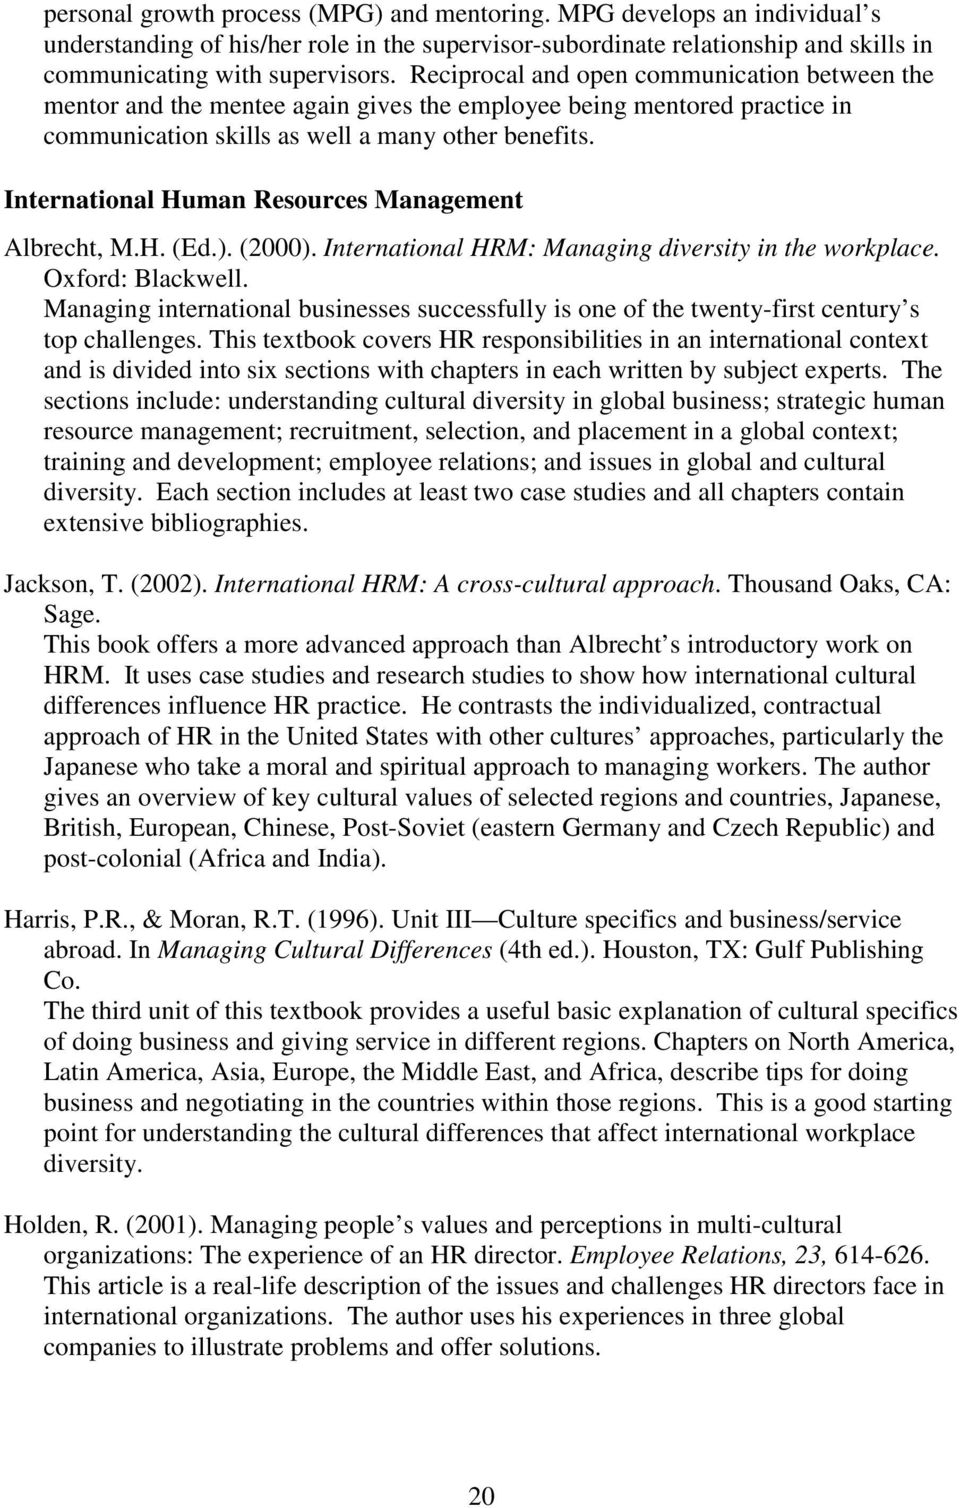 International Human Resources Management Albrecht, M.H. (Ed.). (2000). International HRM: Managing diversity in the workplace. Oxford: Blackwell.